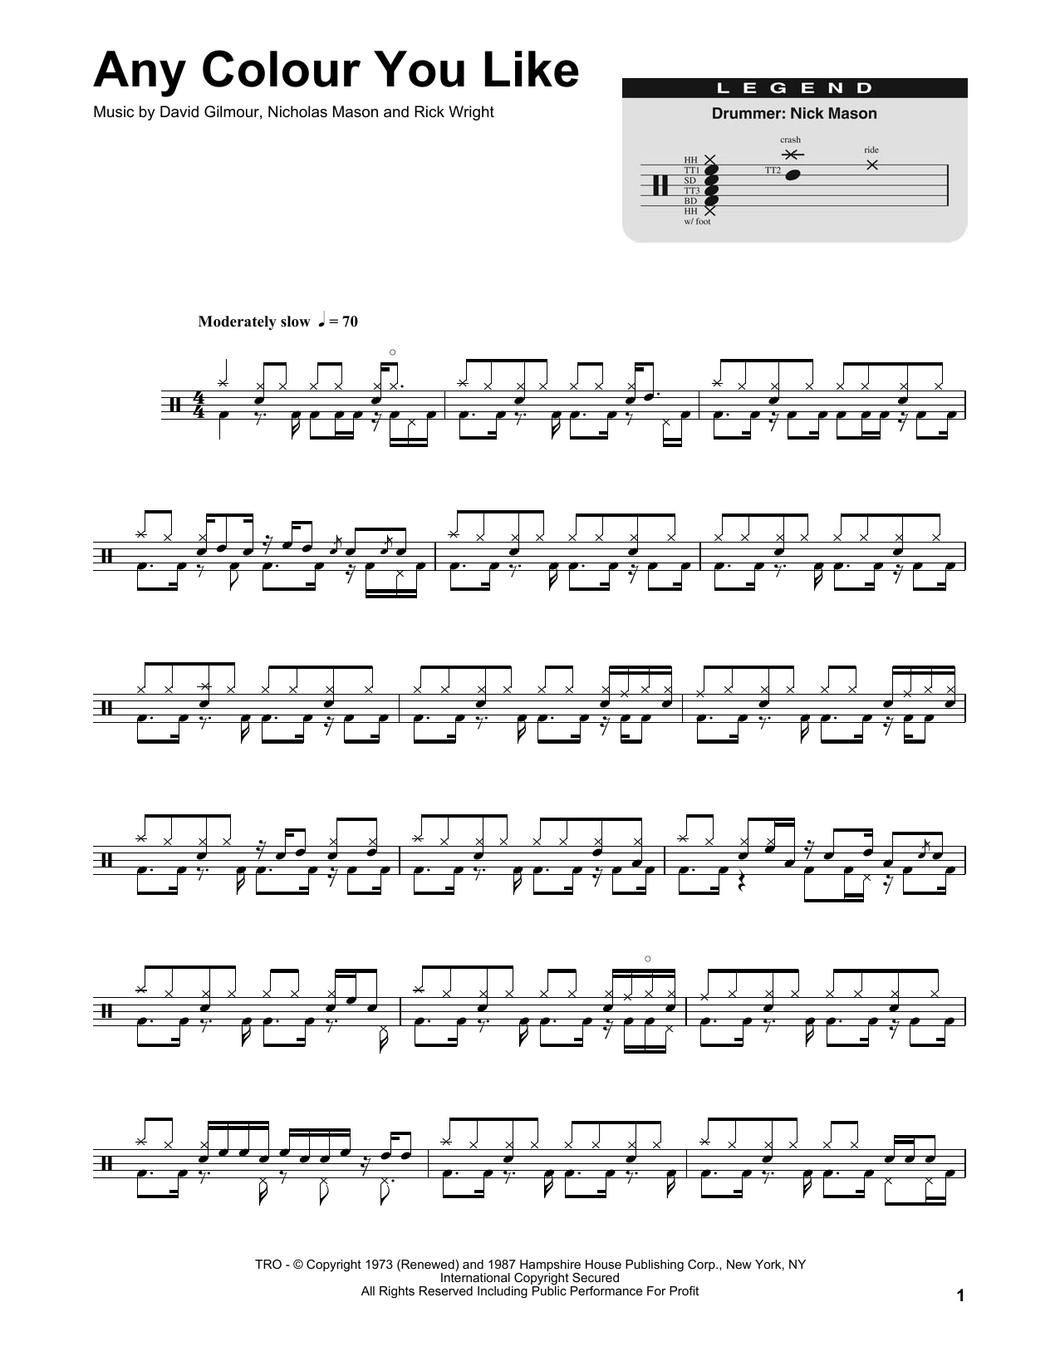 Any Colour You Like - Pink Floyd - Full Drum Transcription / Drum Sheet Music - SheetMusicDirect DT